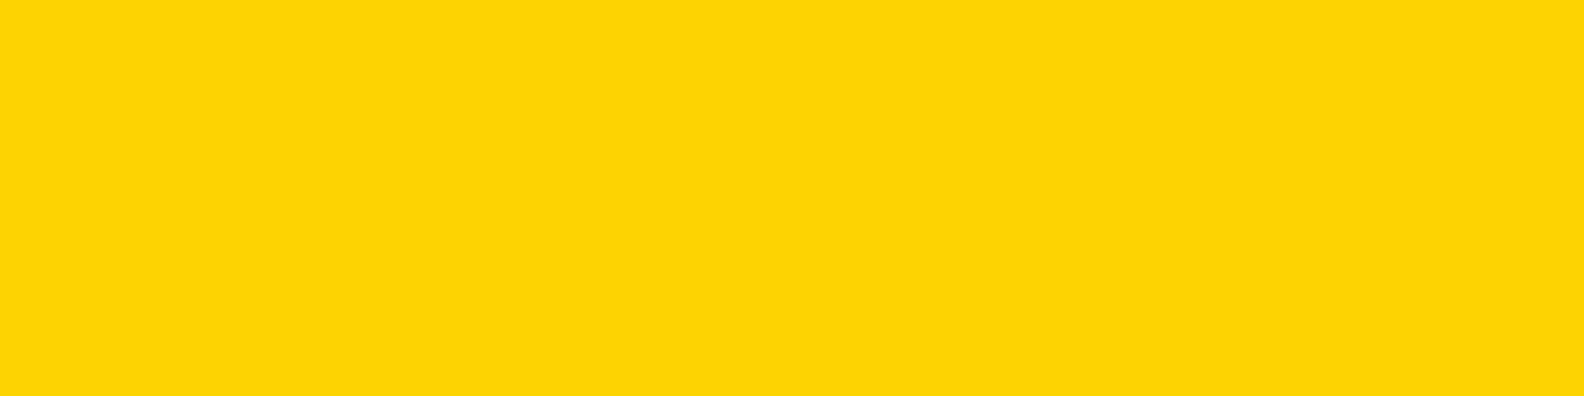 1584x396 Cyber Yellow Solid Color Background